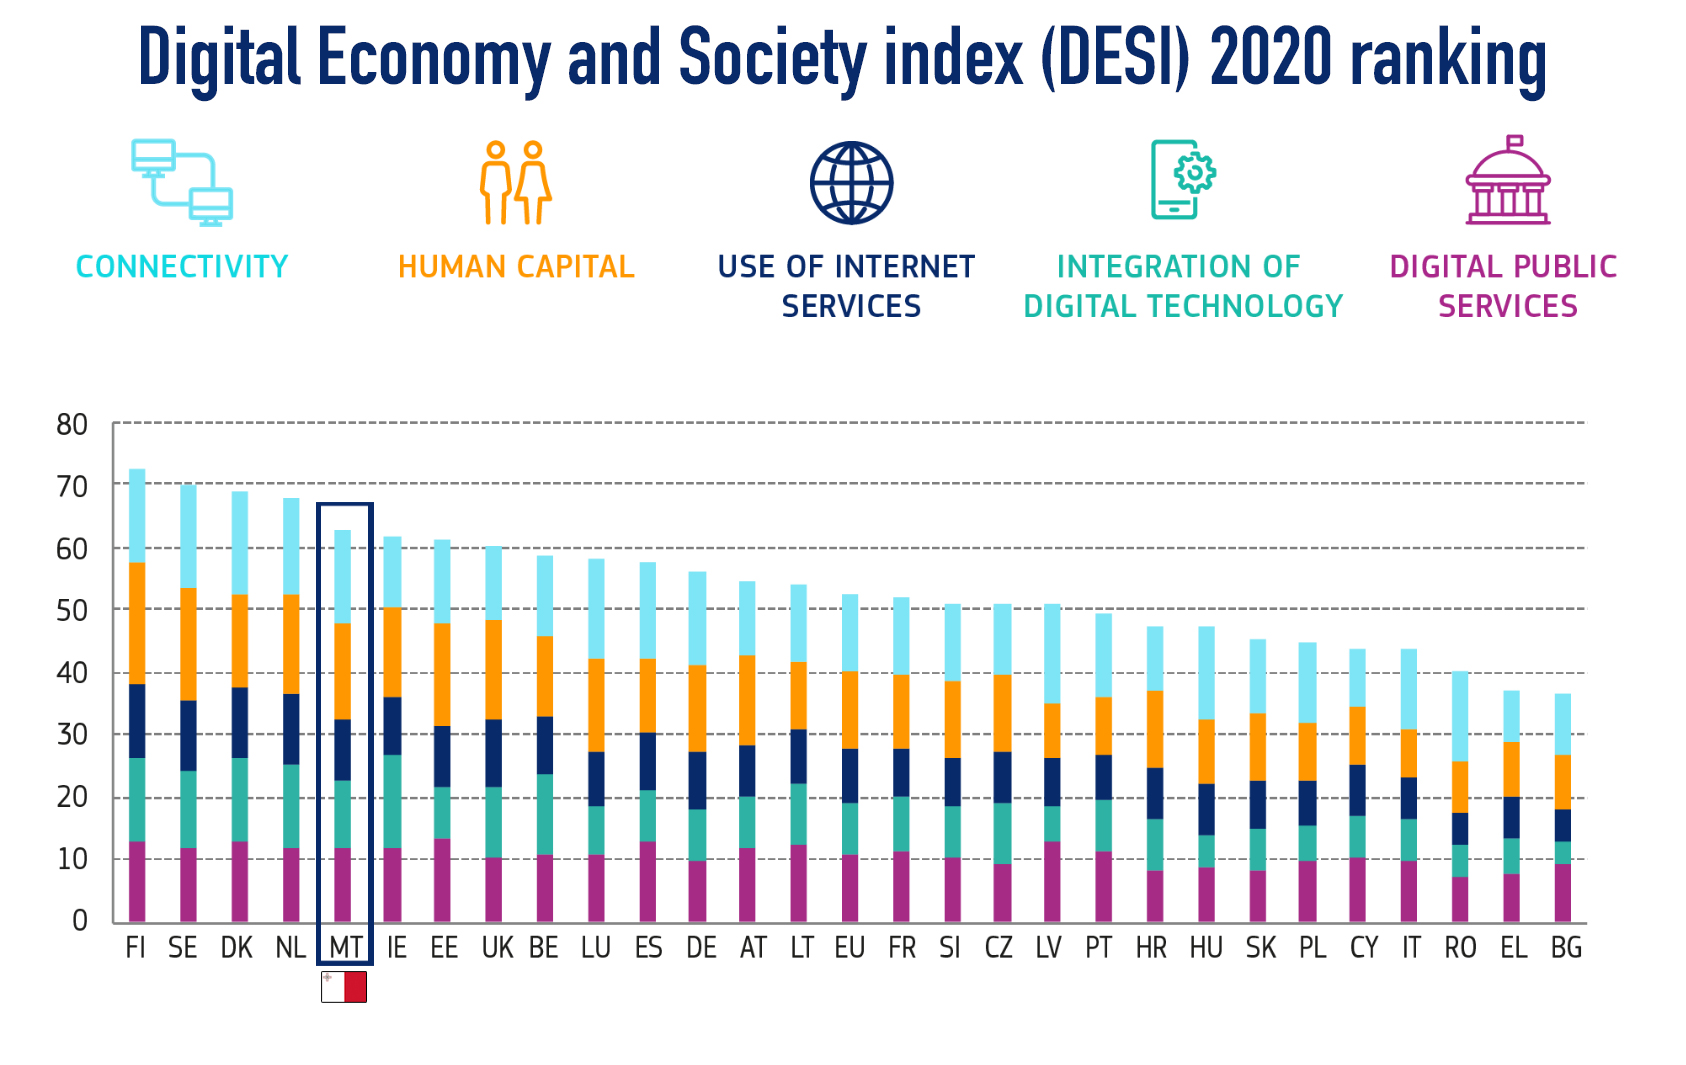 Malta ranks 5th in DESI Index 2020